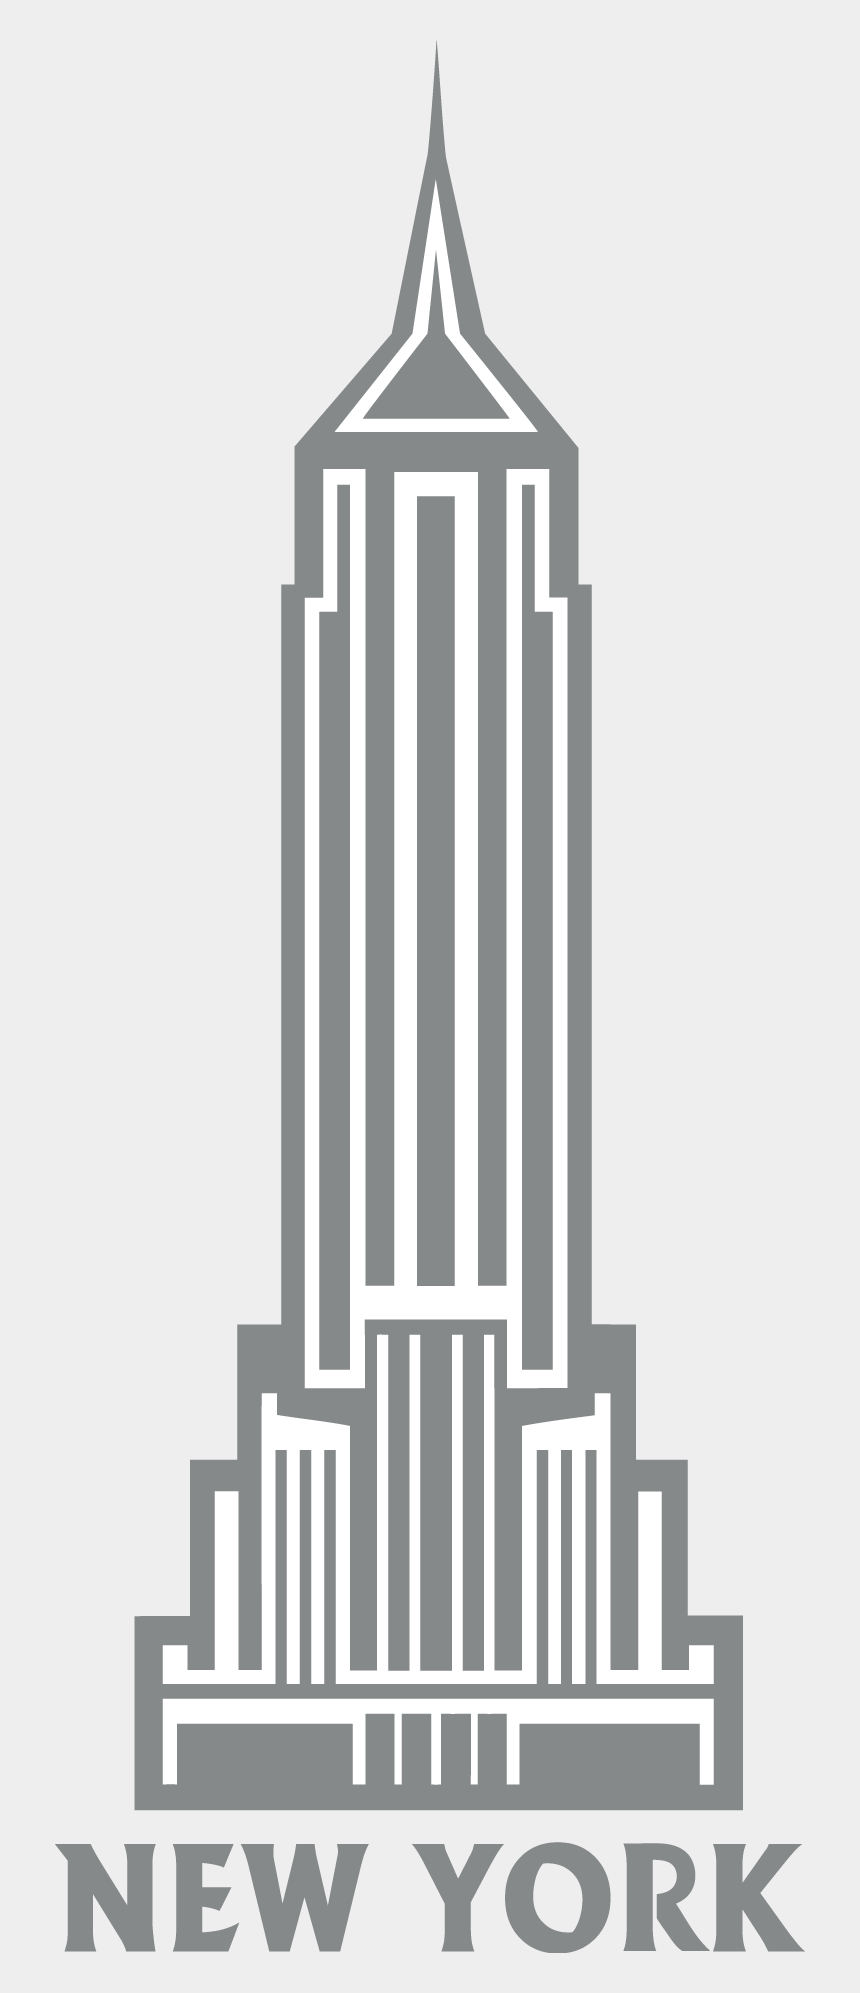 new york clipart, Cartoons - Empire Clipart New York Building - Empire State Building Stencil